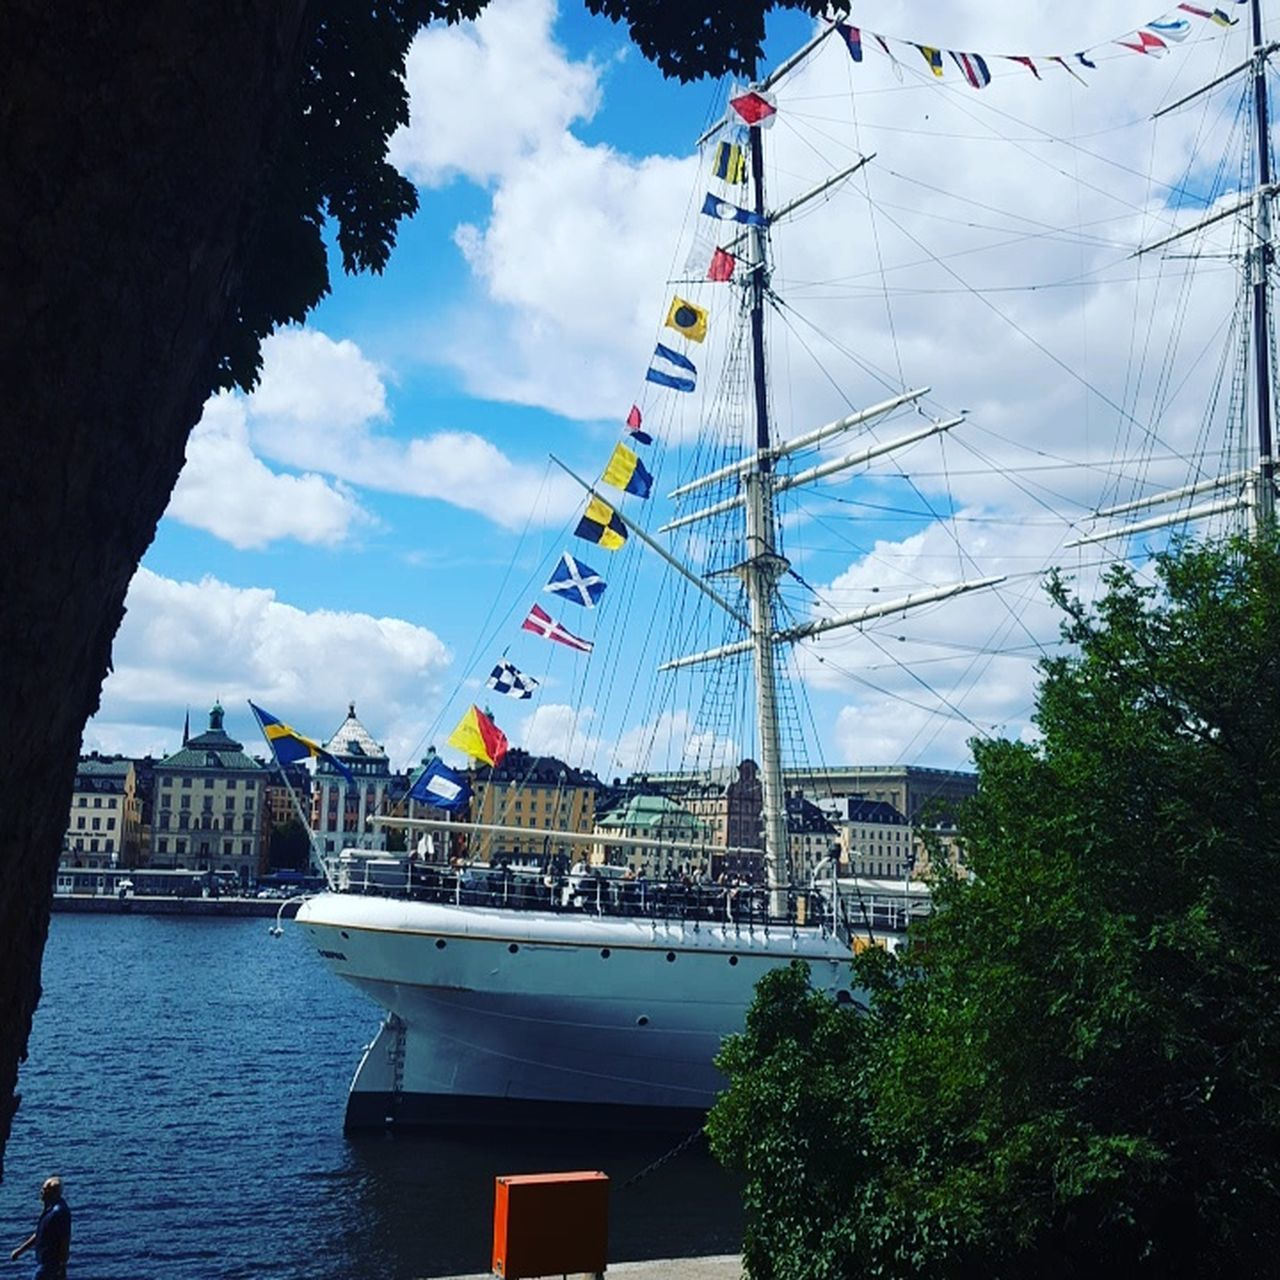 Boats⛵️ Lunchtime! Greatday Sportday Challenge World Sweden Scandinavia